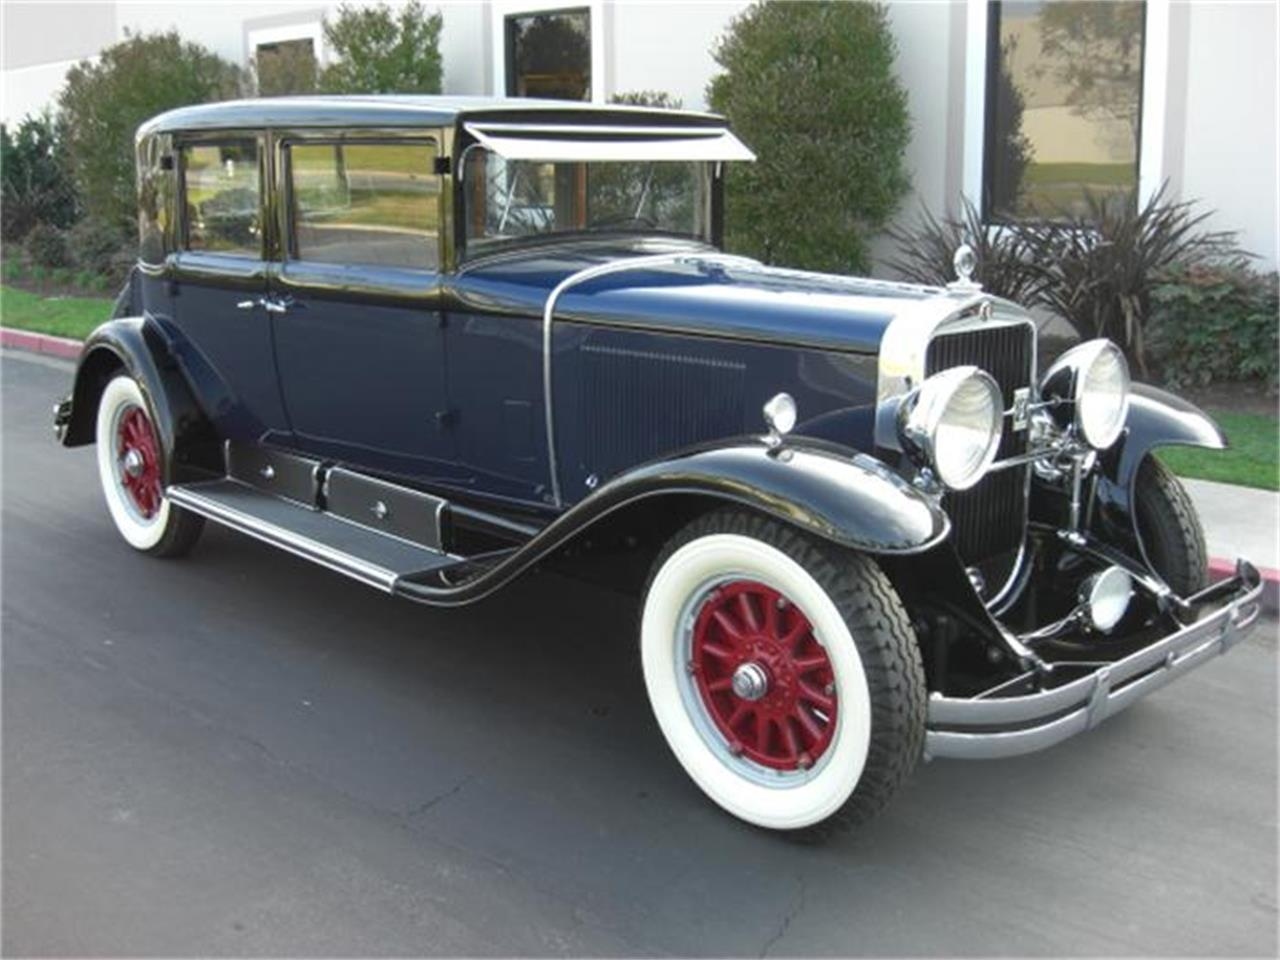 Large Picture of '29 Cadillac Sedan located in California - $79,900.00 - 4HEP